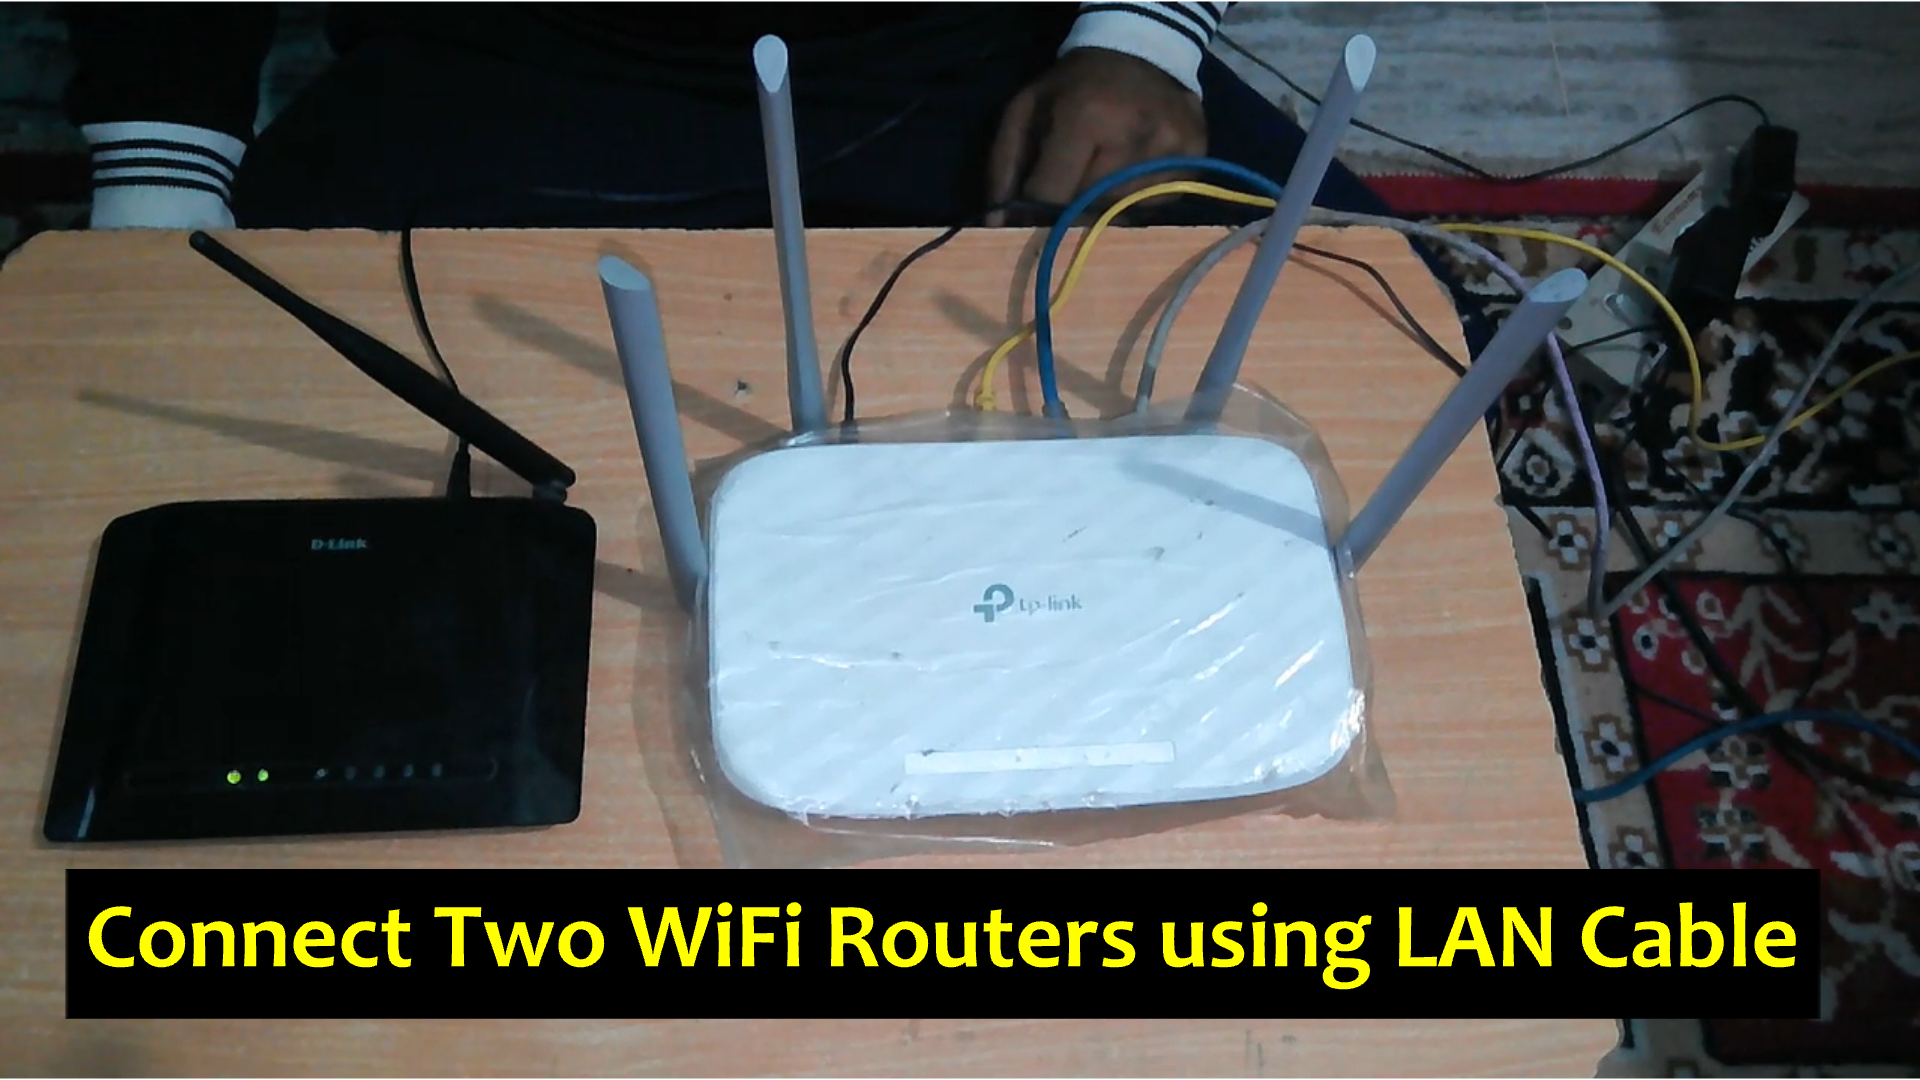 A second wifi router (dlink wifi router) can be connected to